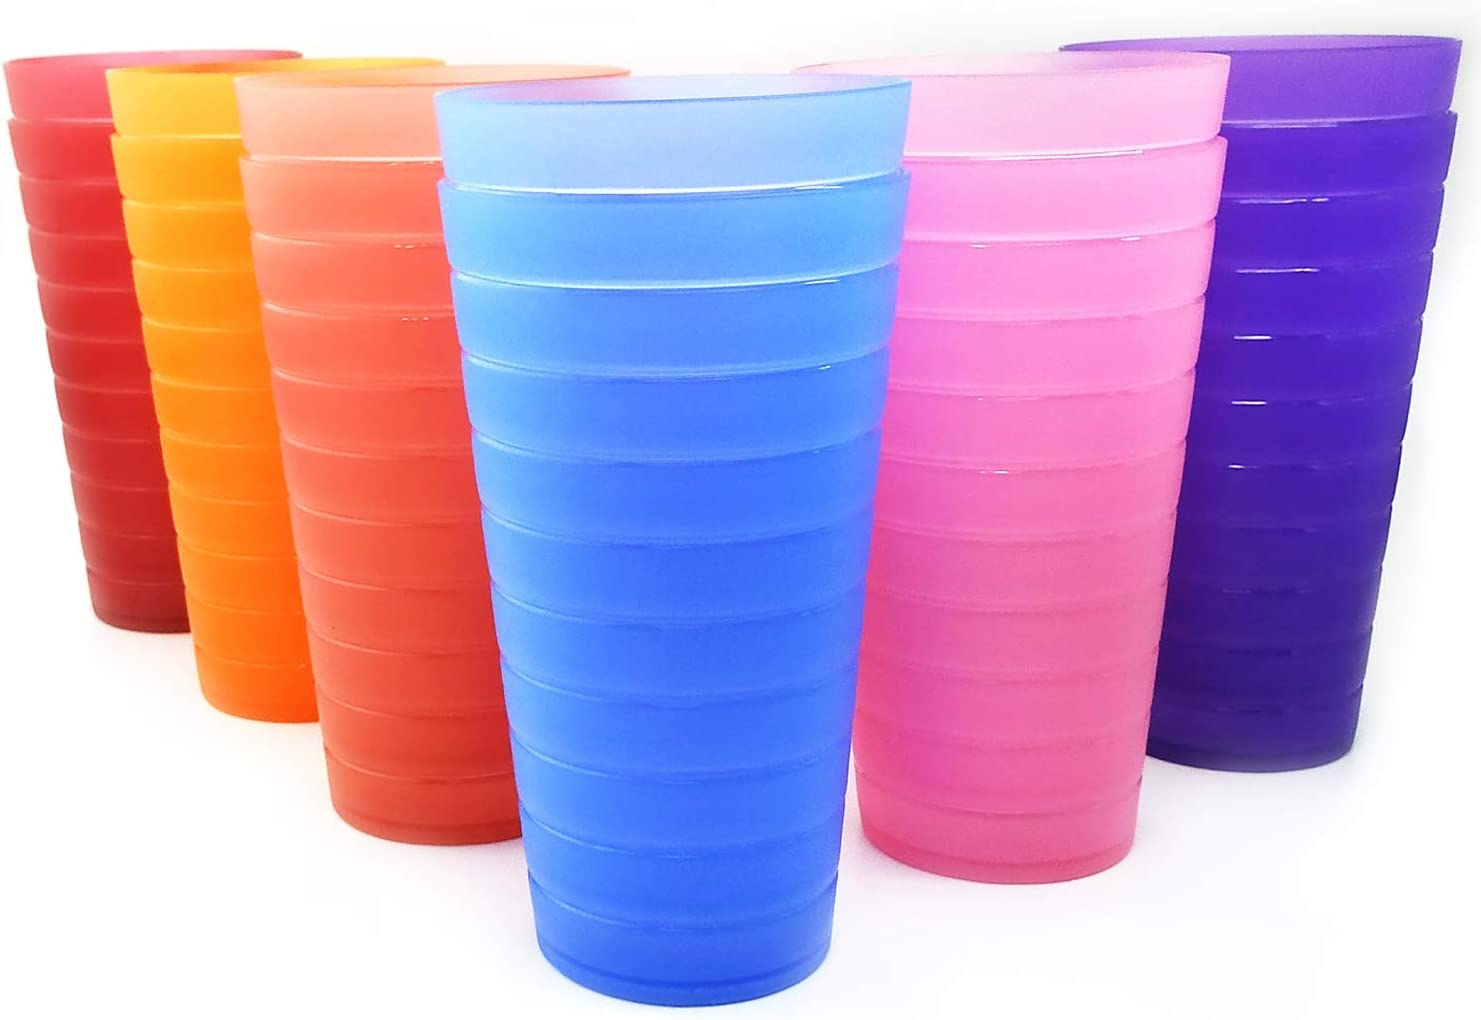 All stores are sold Unbreakable 32-ounce Plastic Tumbler Drinking 12 2021 new Glasses Set of